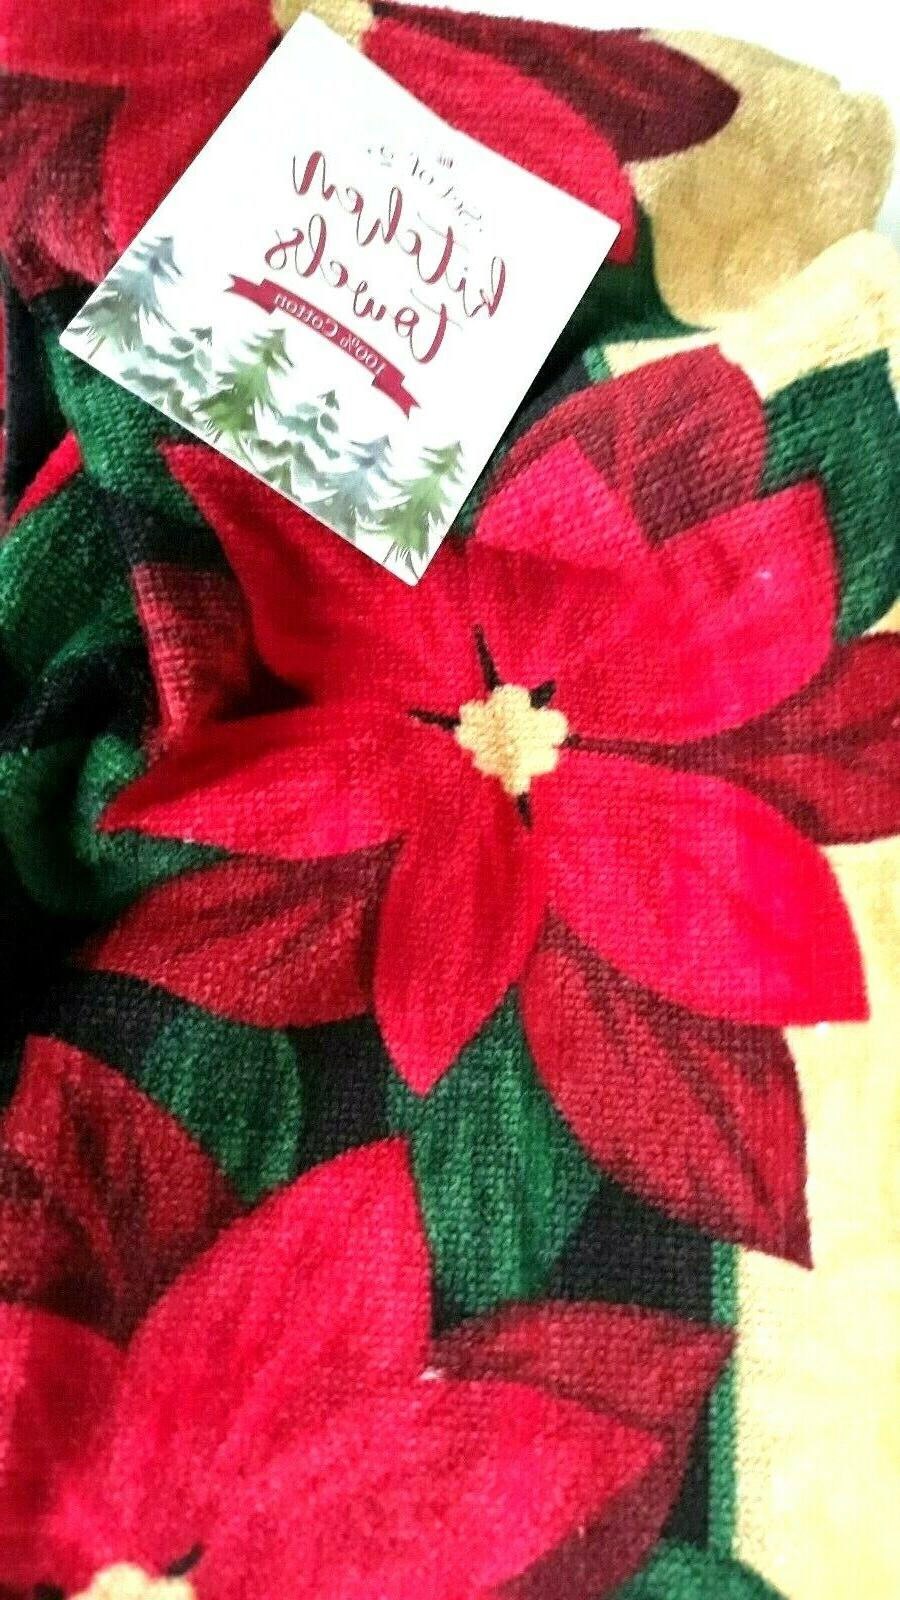 Kitchen hand dish Towels Set of 2 Poinsettia towels